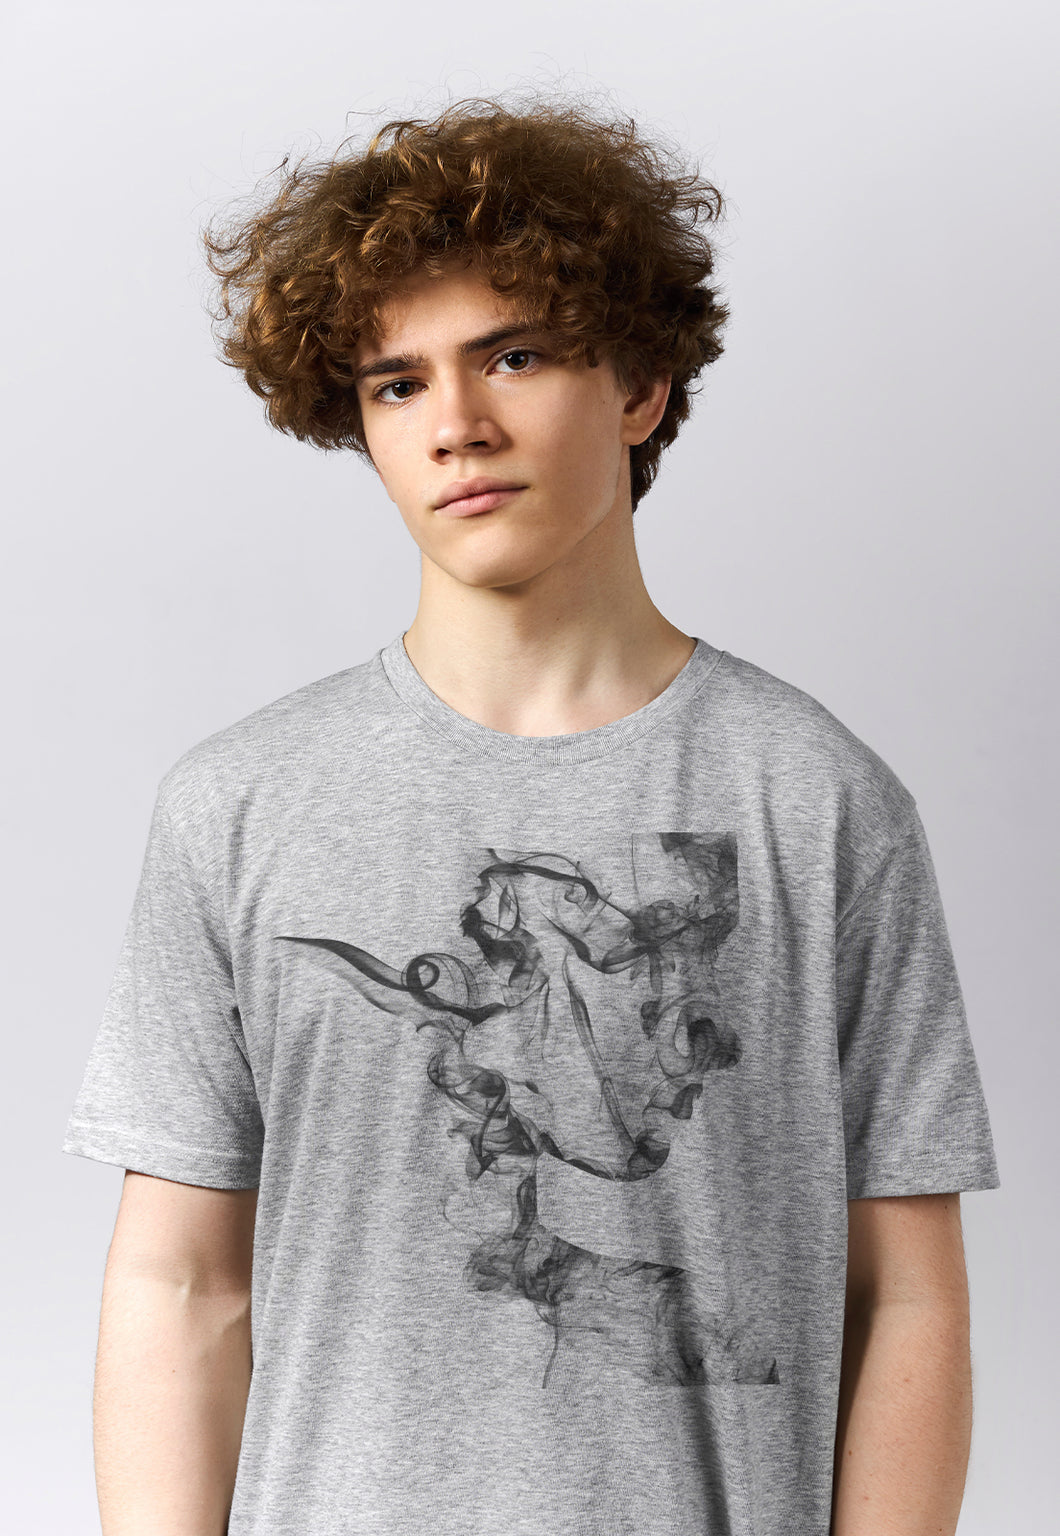 Camiseta Masculina Estampada Mirat - Shadow